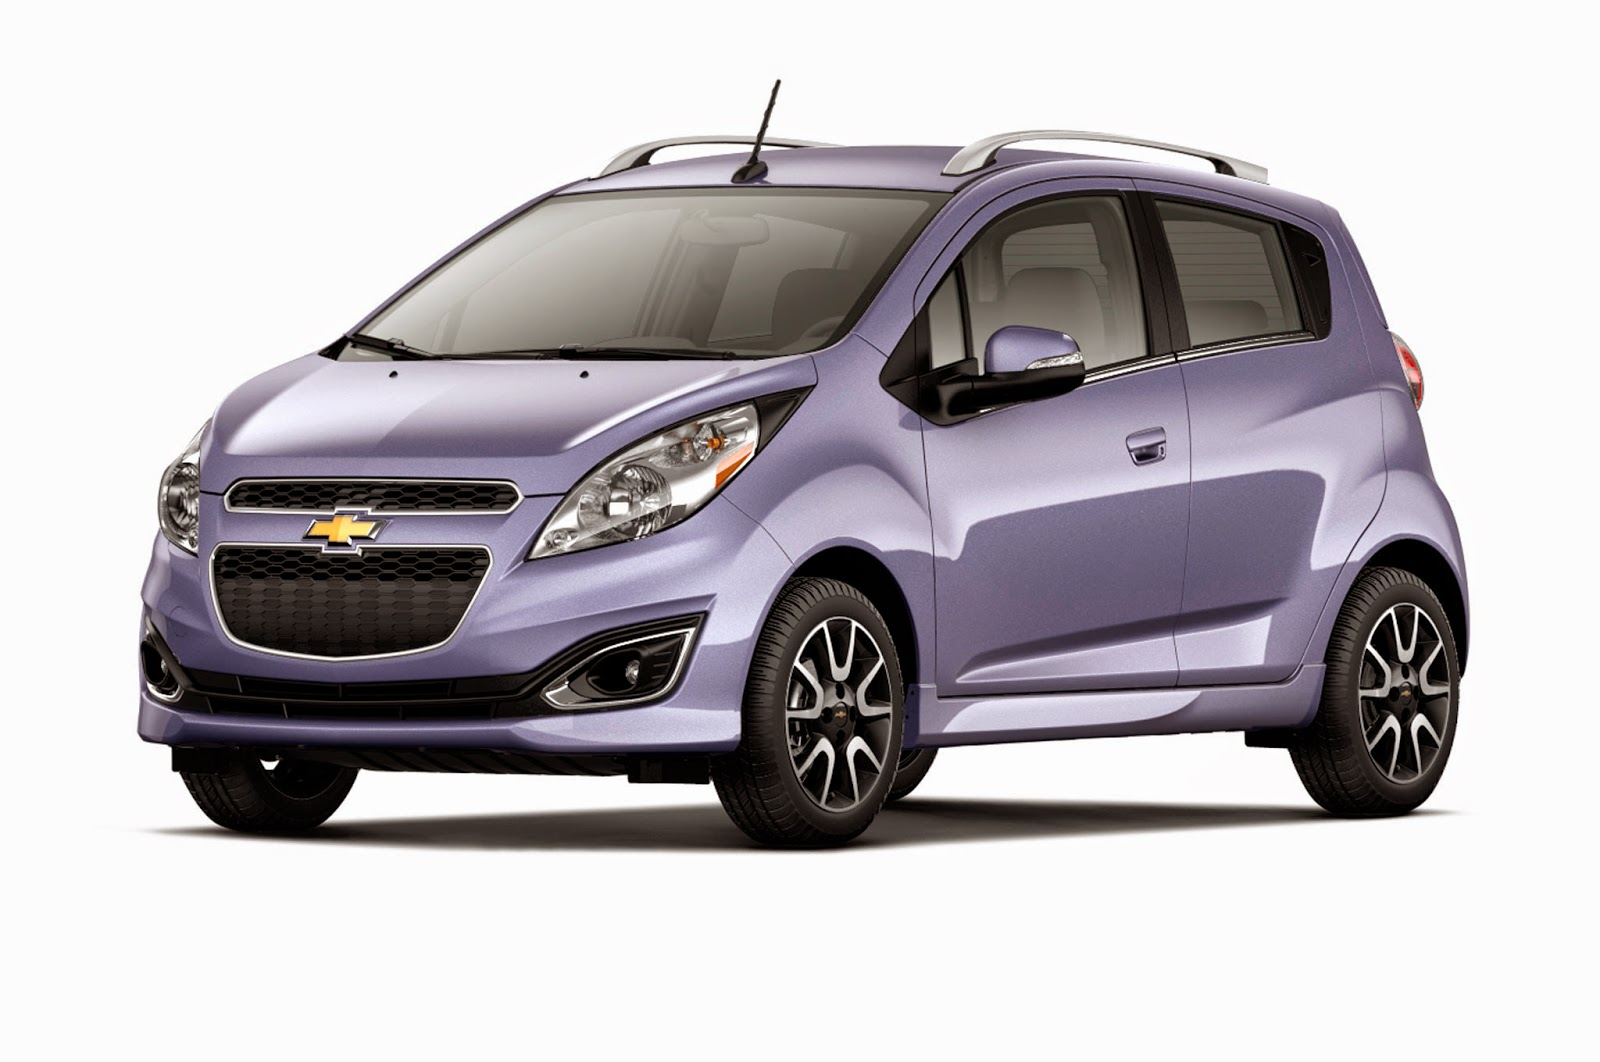 Chevrolet Spark Newer Version Claimed More Powerful and Efficient